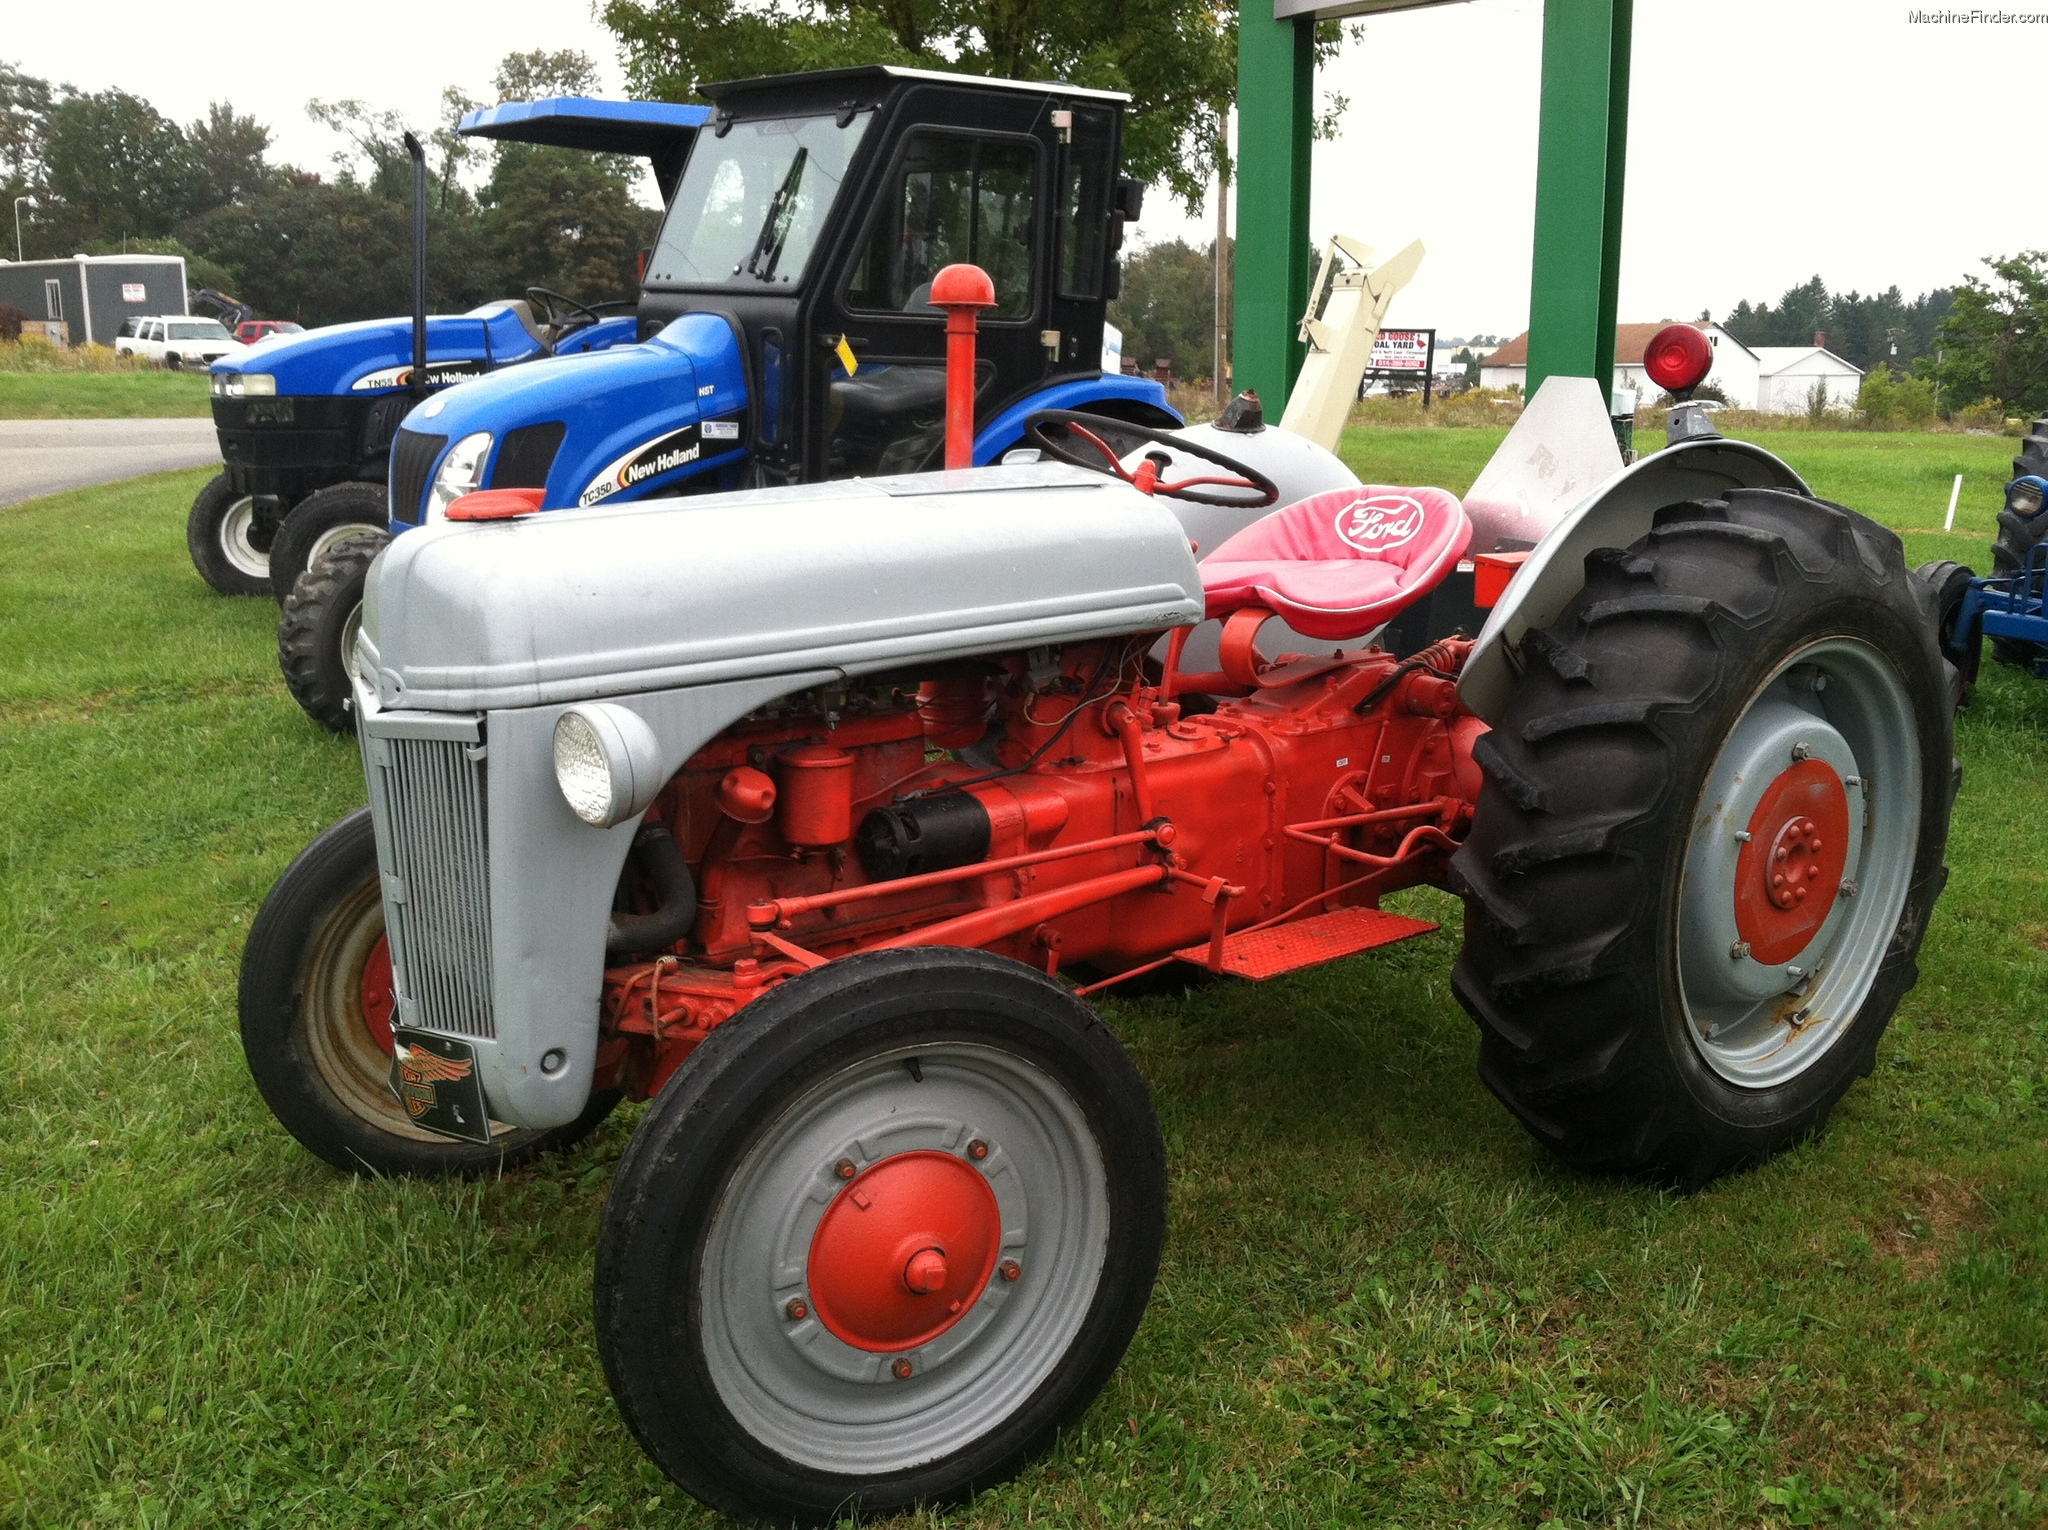 Ford 4000 Tractor Fenders : Used ford tractor engine free image for user